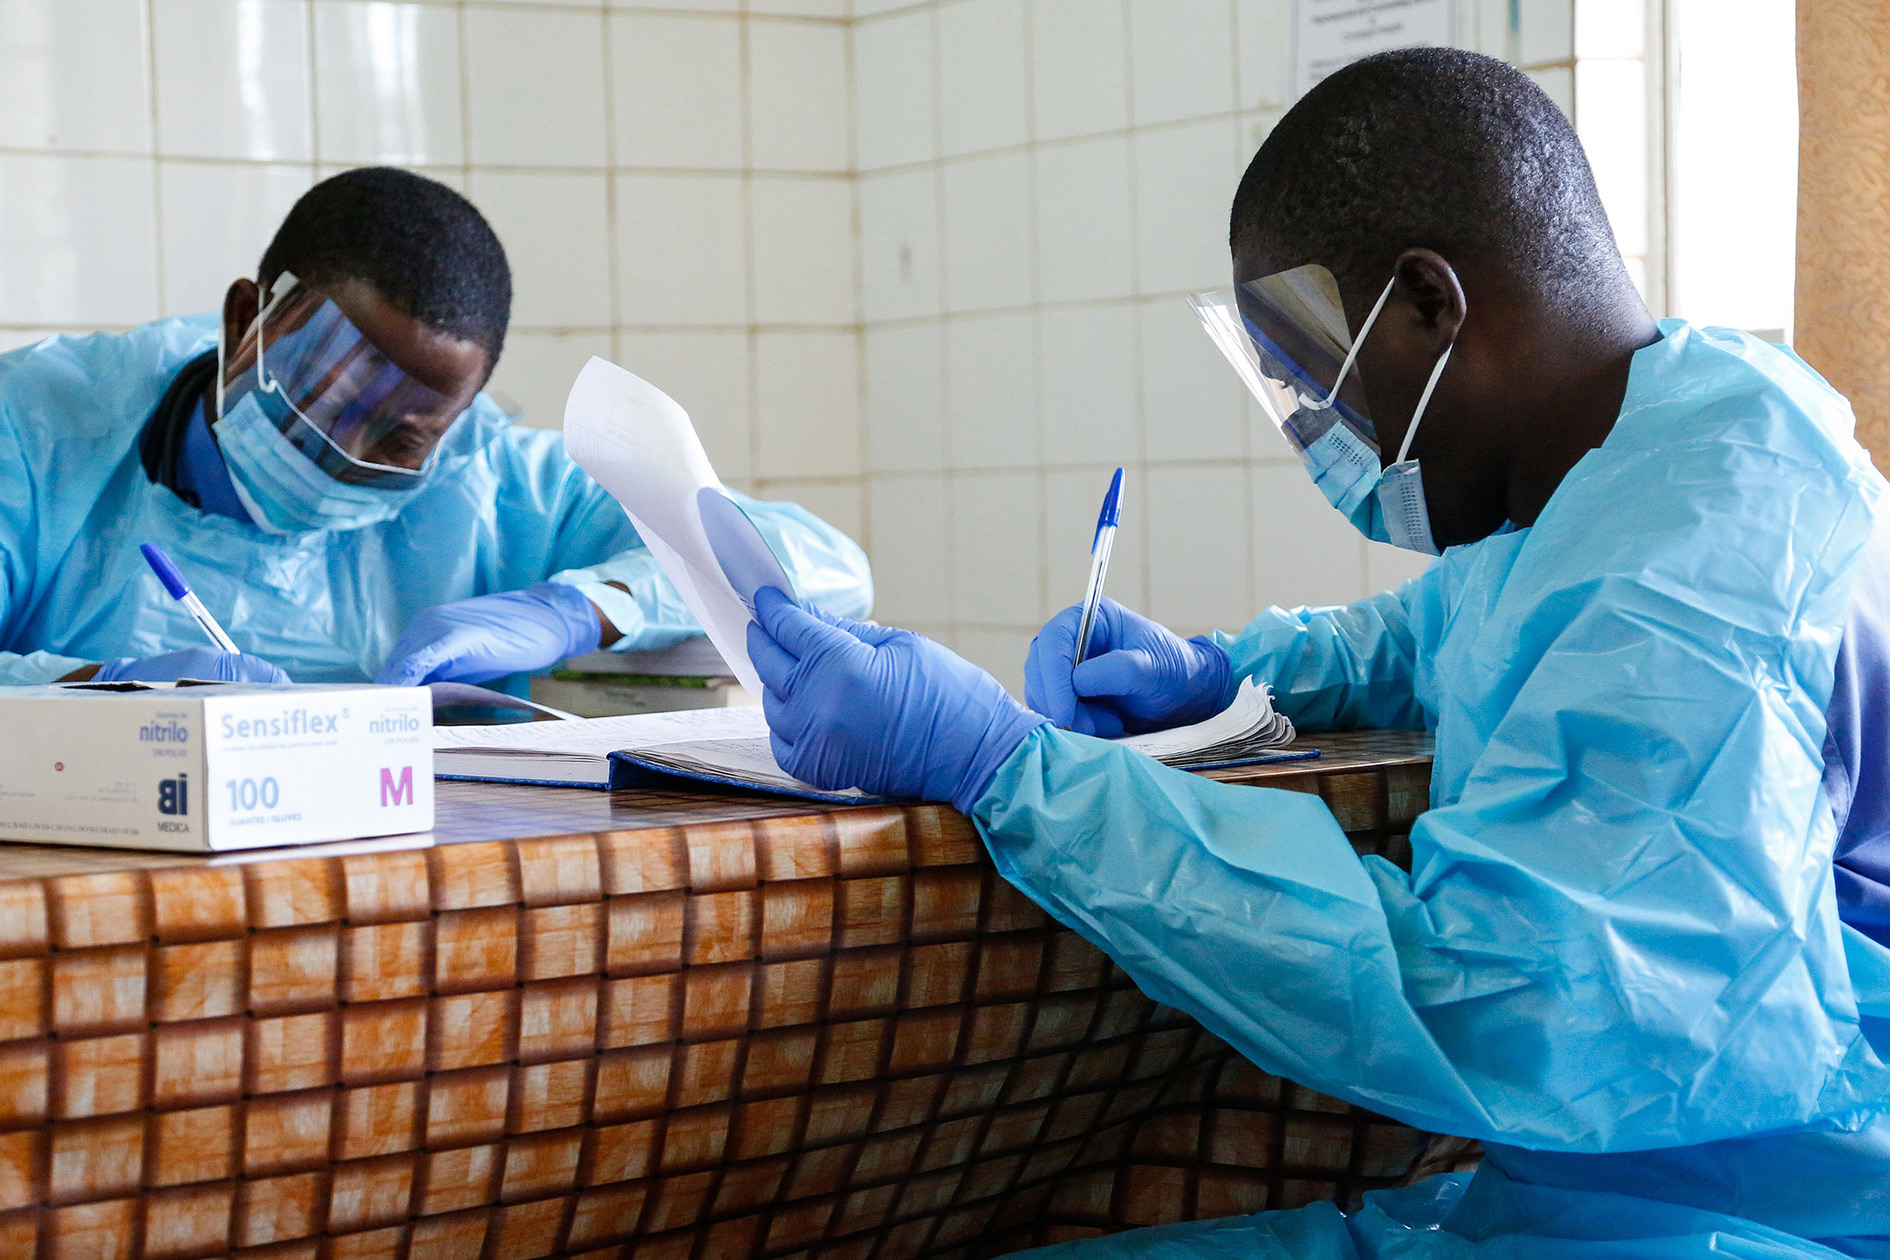 Doctors working at Connaught Hospital, Freetown, Sierra Leone. This hospital was on the frontline of the Ebola epidemic when it hit in Freetown.